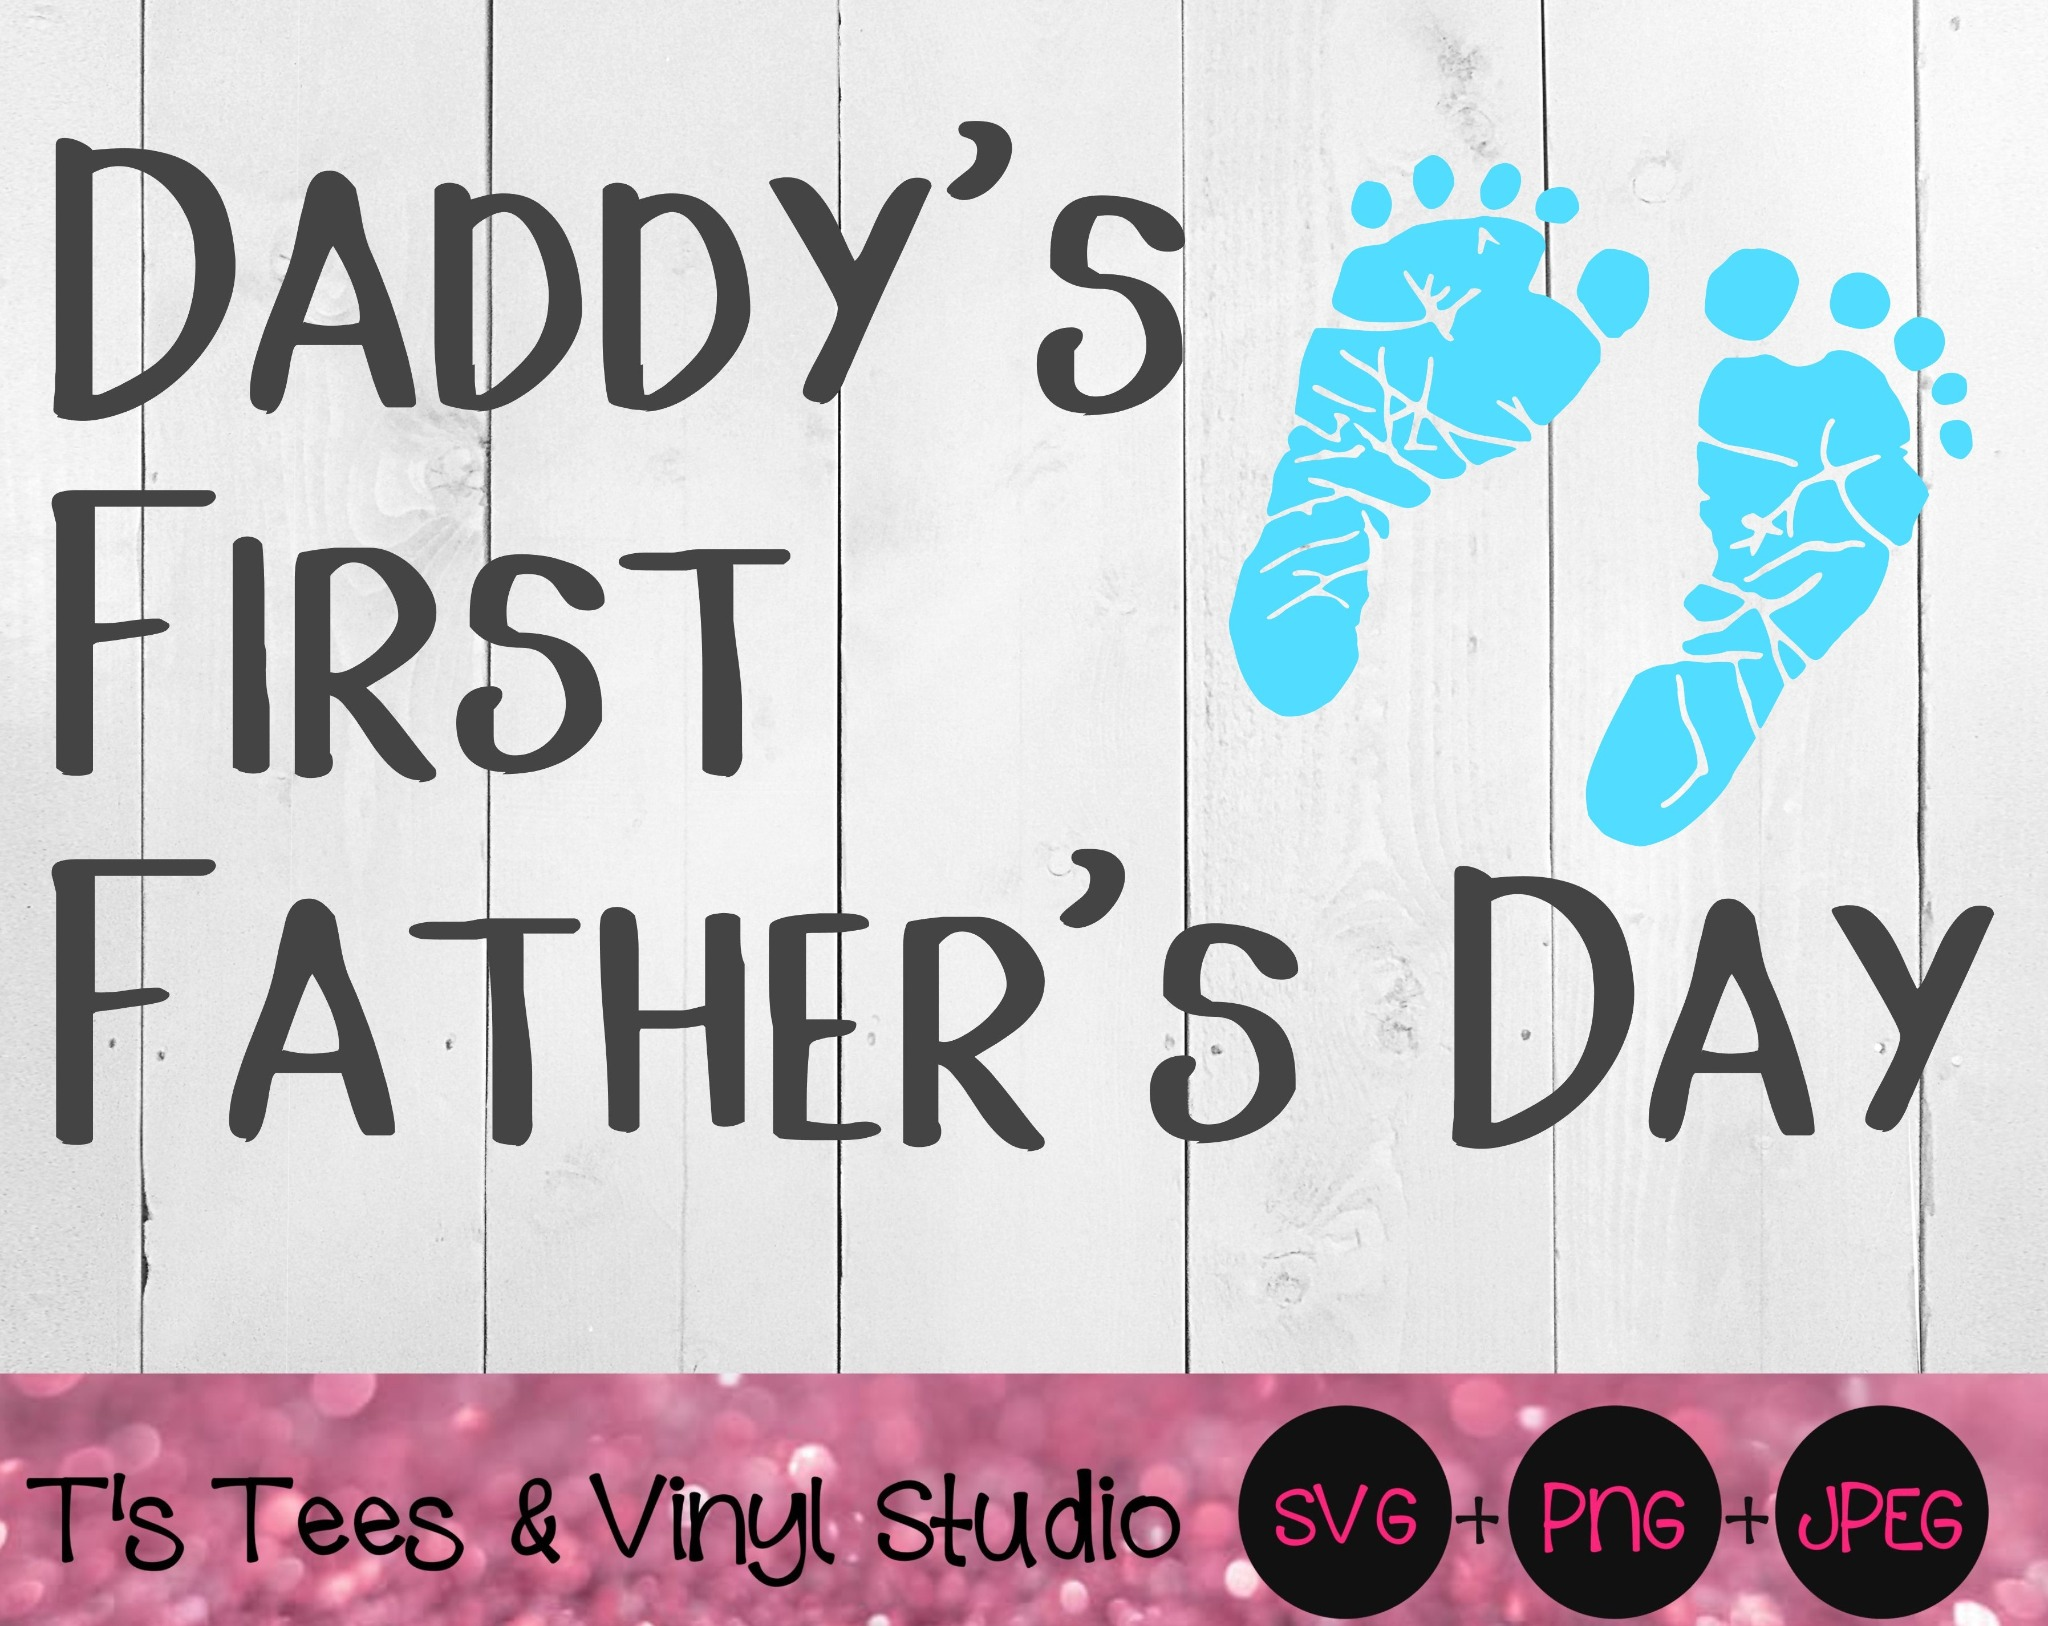 Father's Day Svg, First Father's Day Svg, Daddy's First Father's Day Svg, Pregnancy Announcement Svg